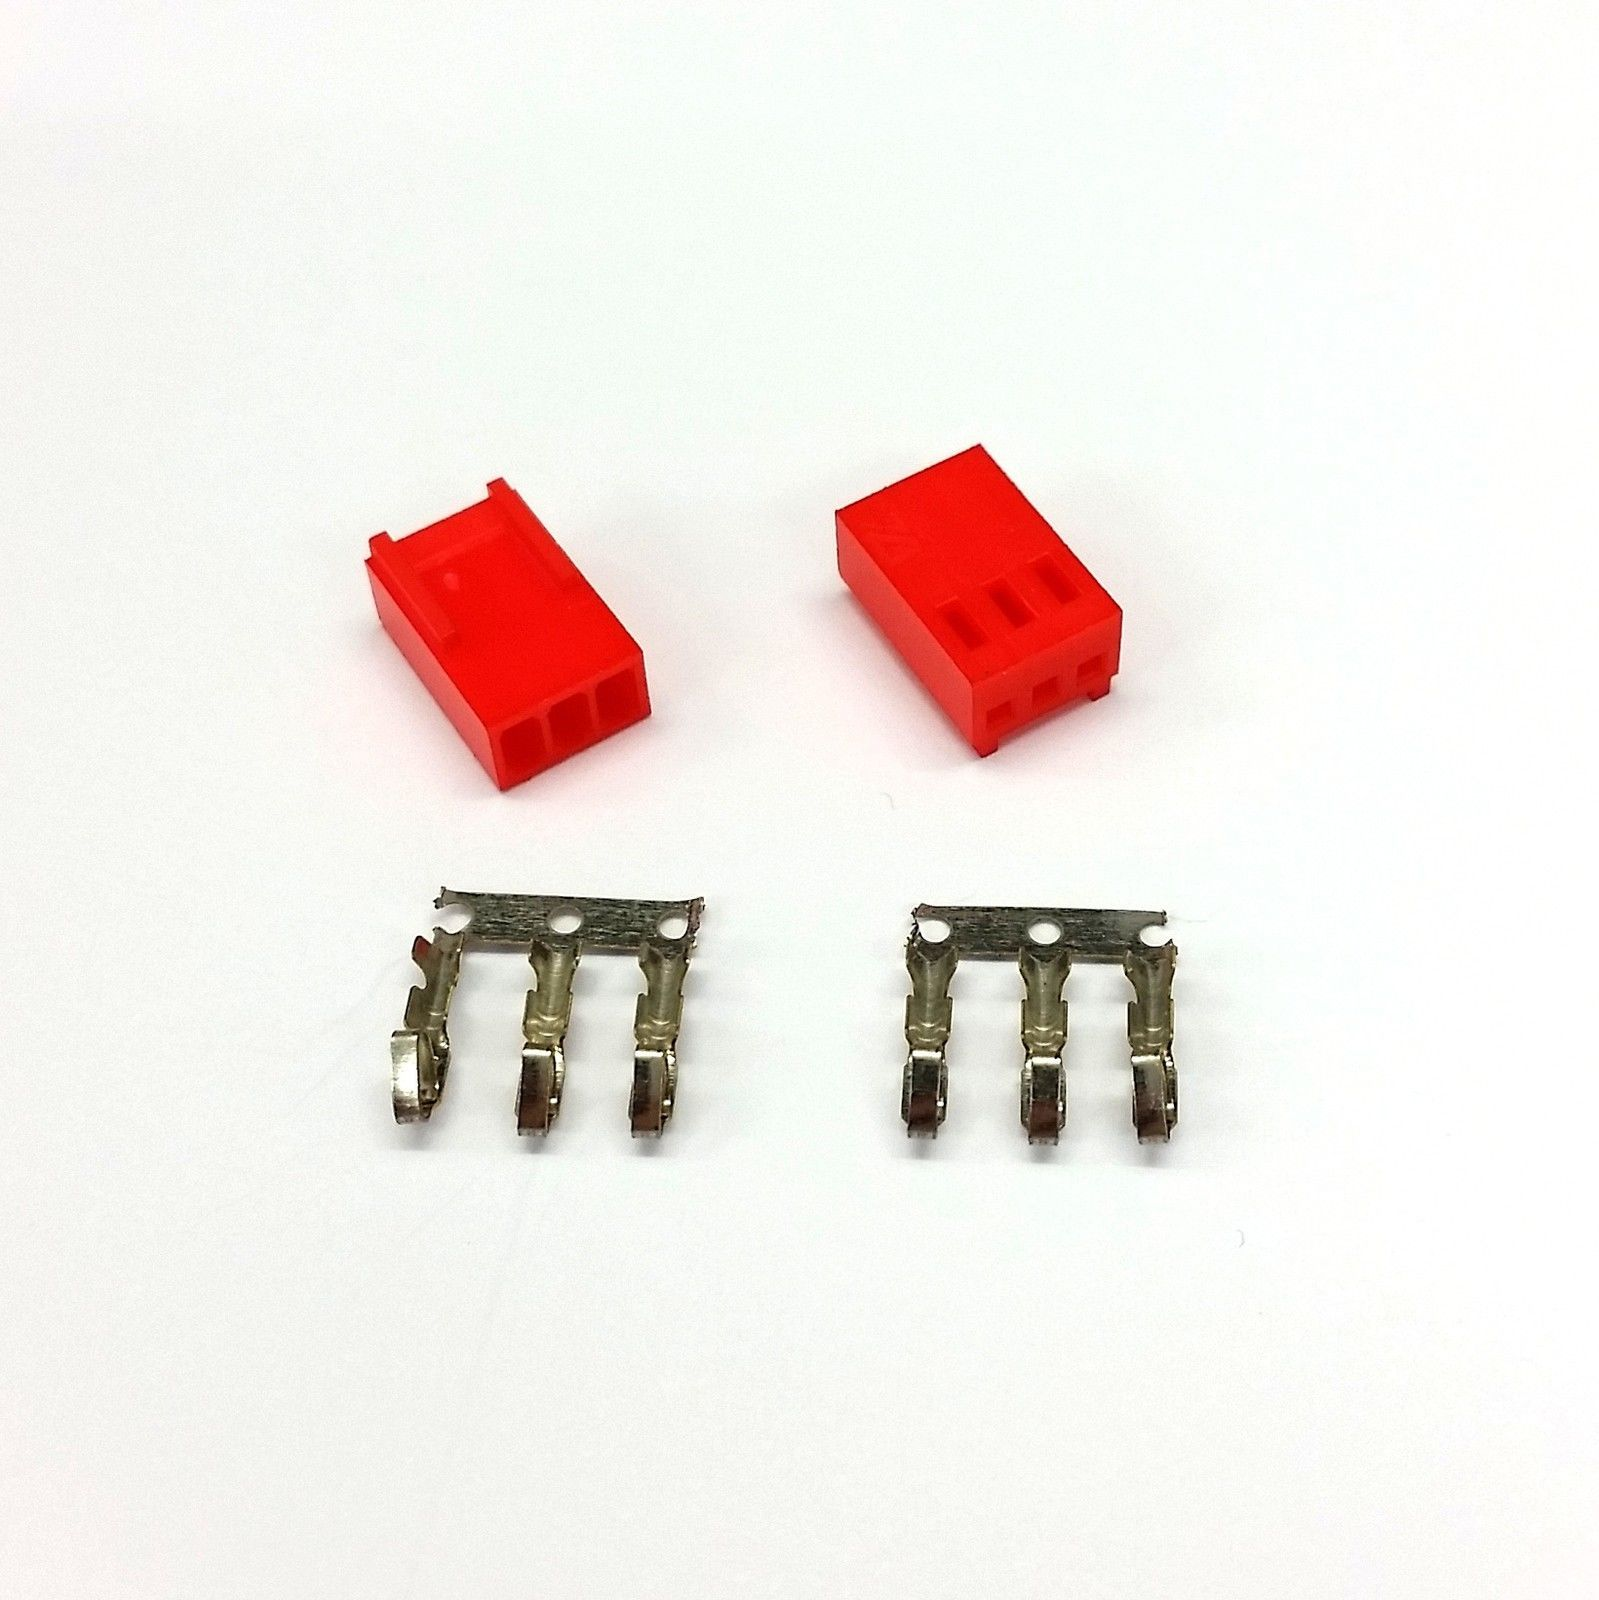 PK OF 2 - FEMALE 3 PIN FAN POWER CONNECTOR - RED INC PINS - $2.58